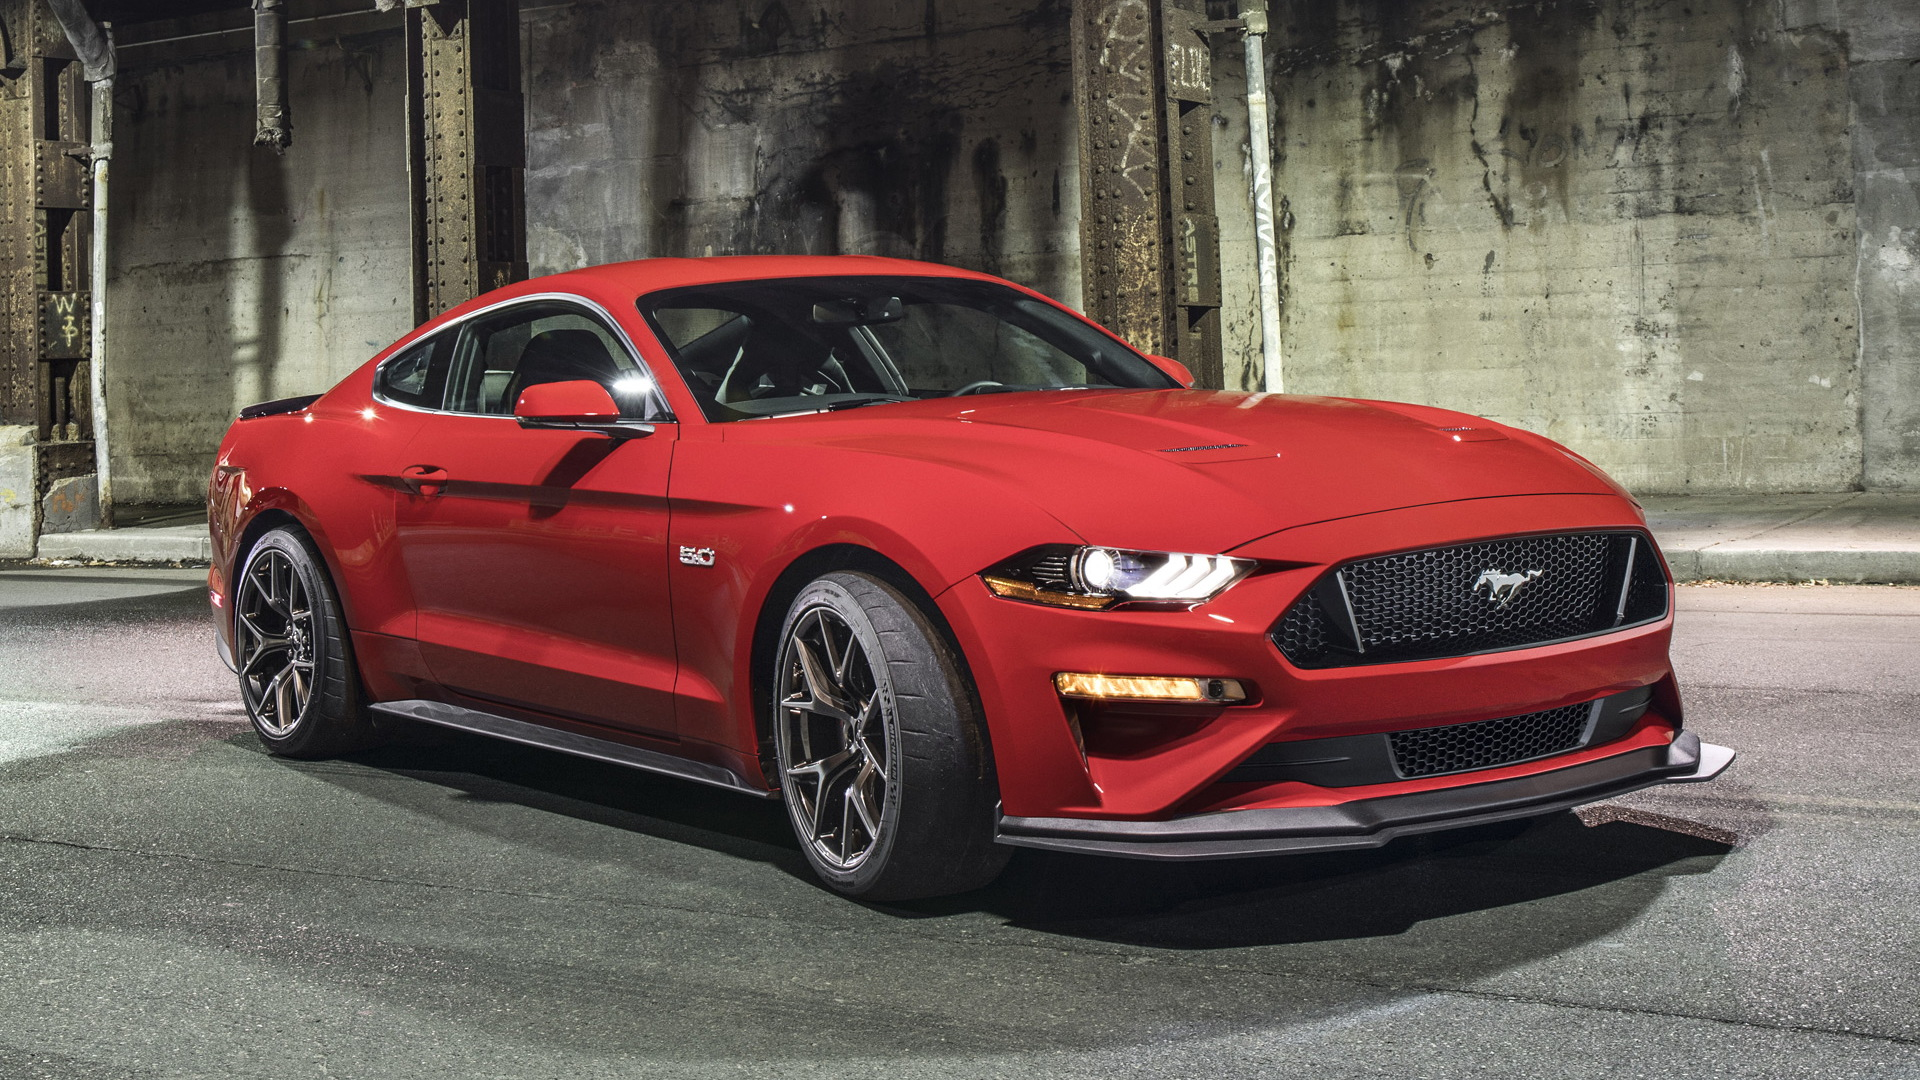 2018 Ford Mustang GT equipped with Performance Pack Level 2